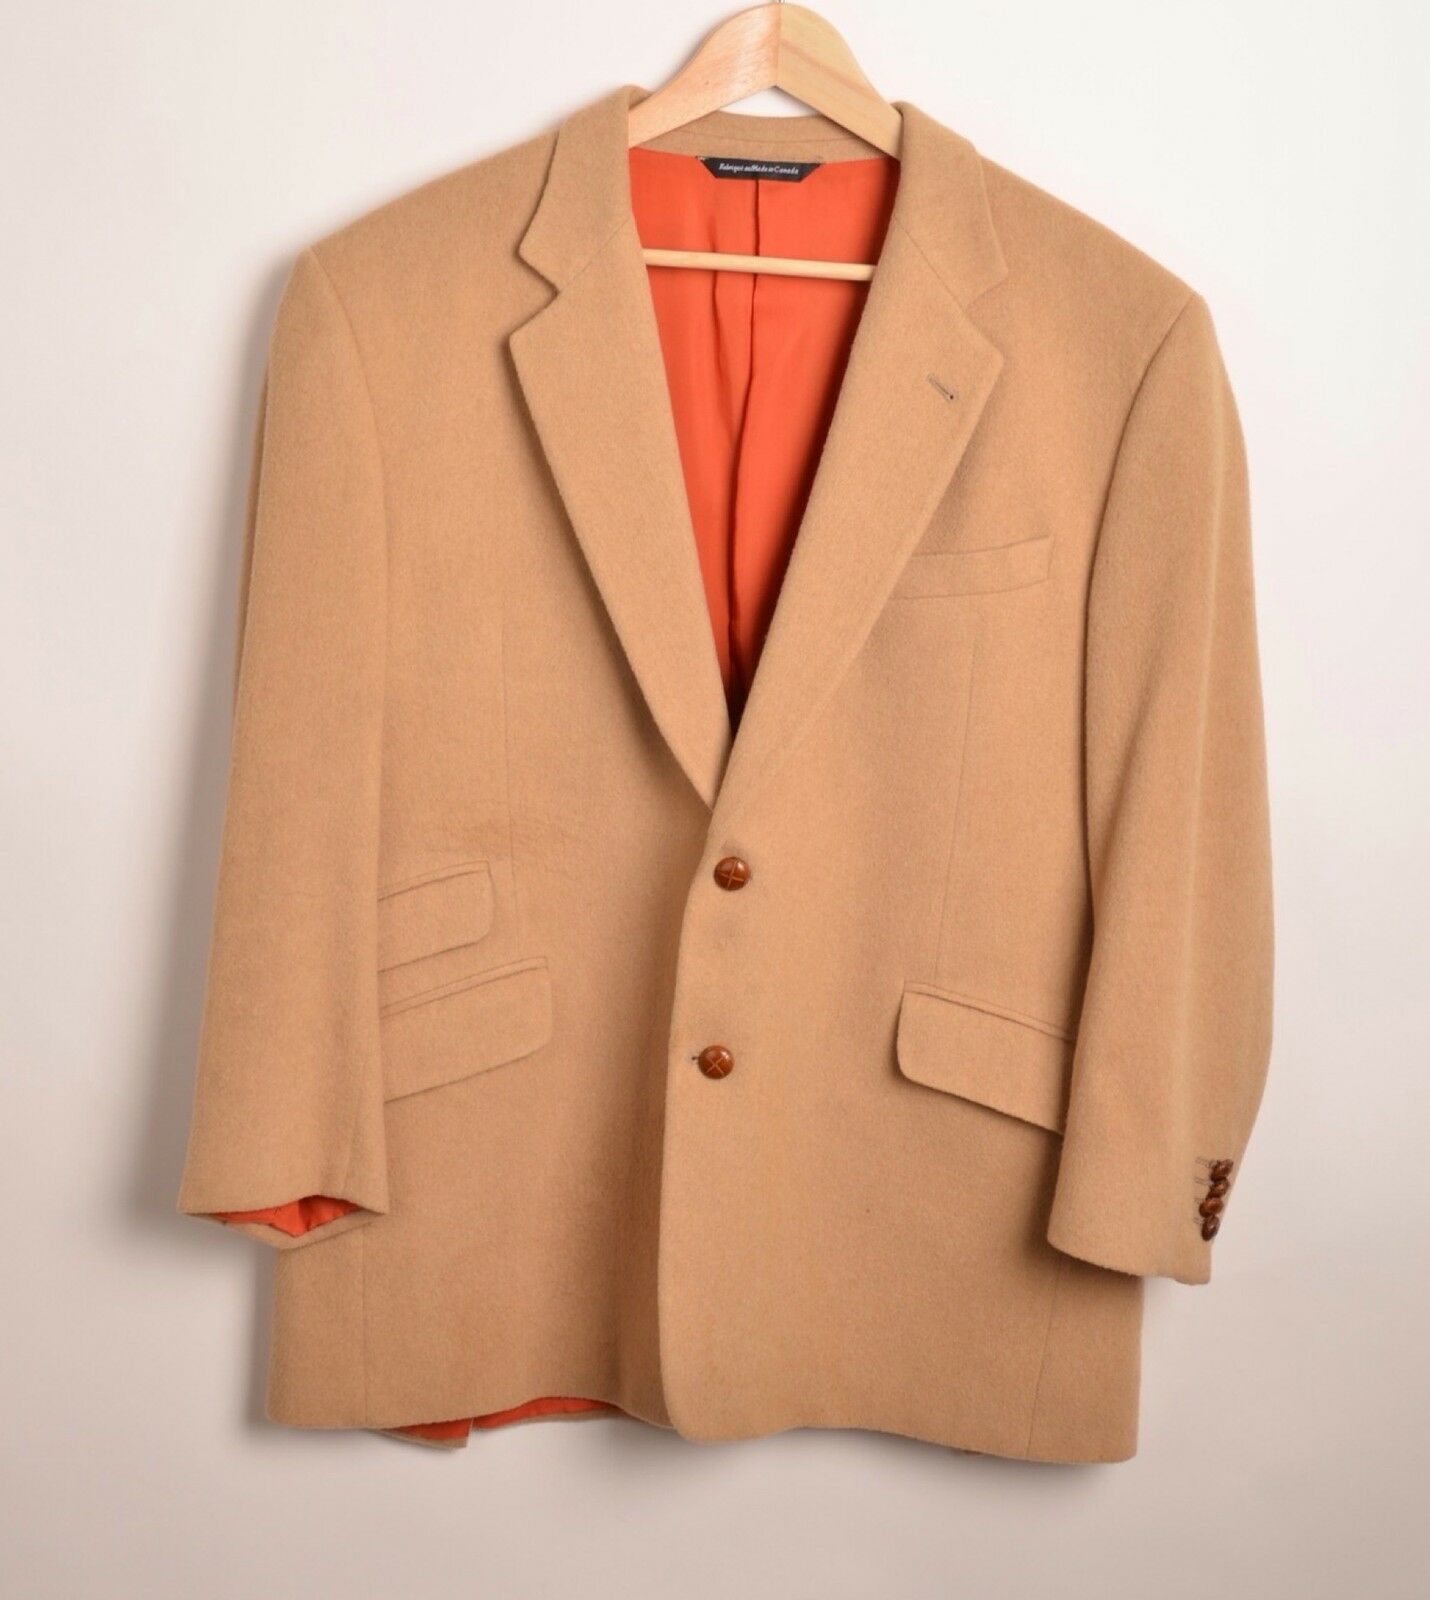 Giorgeo Carelli Tan Cashmere  Herren Medium Blazer Two Button